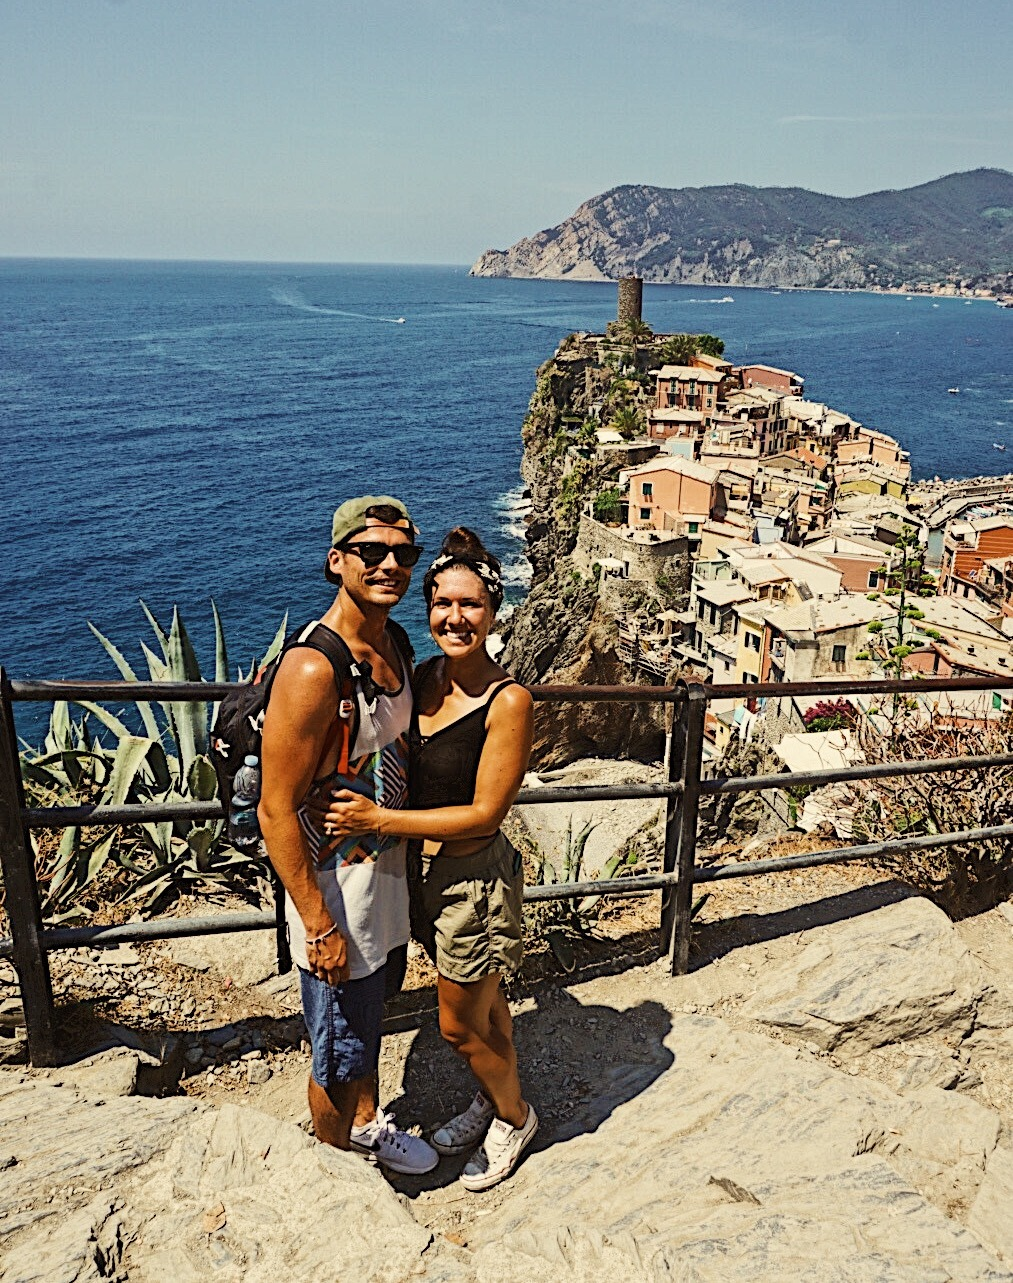 2 Days in Cinque Terre, | Cinque Terre Italy | Travel Diary Cinque Terre | Where to Eat in Cinque Terre | Travel Guide for Cinque Terre